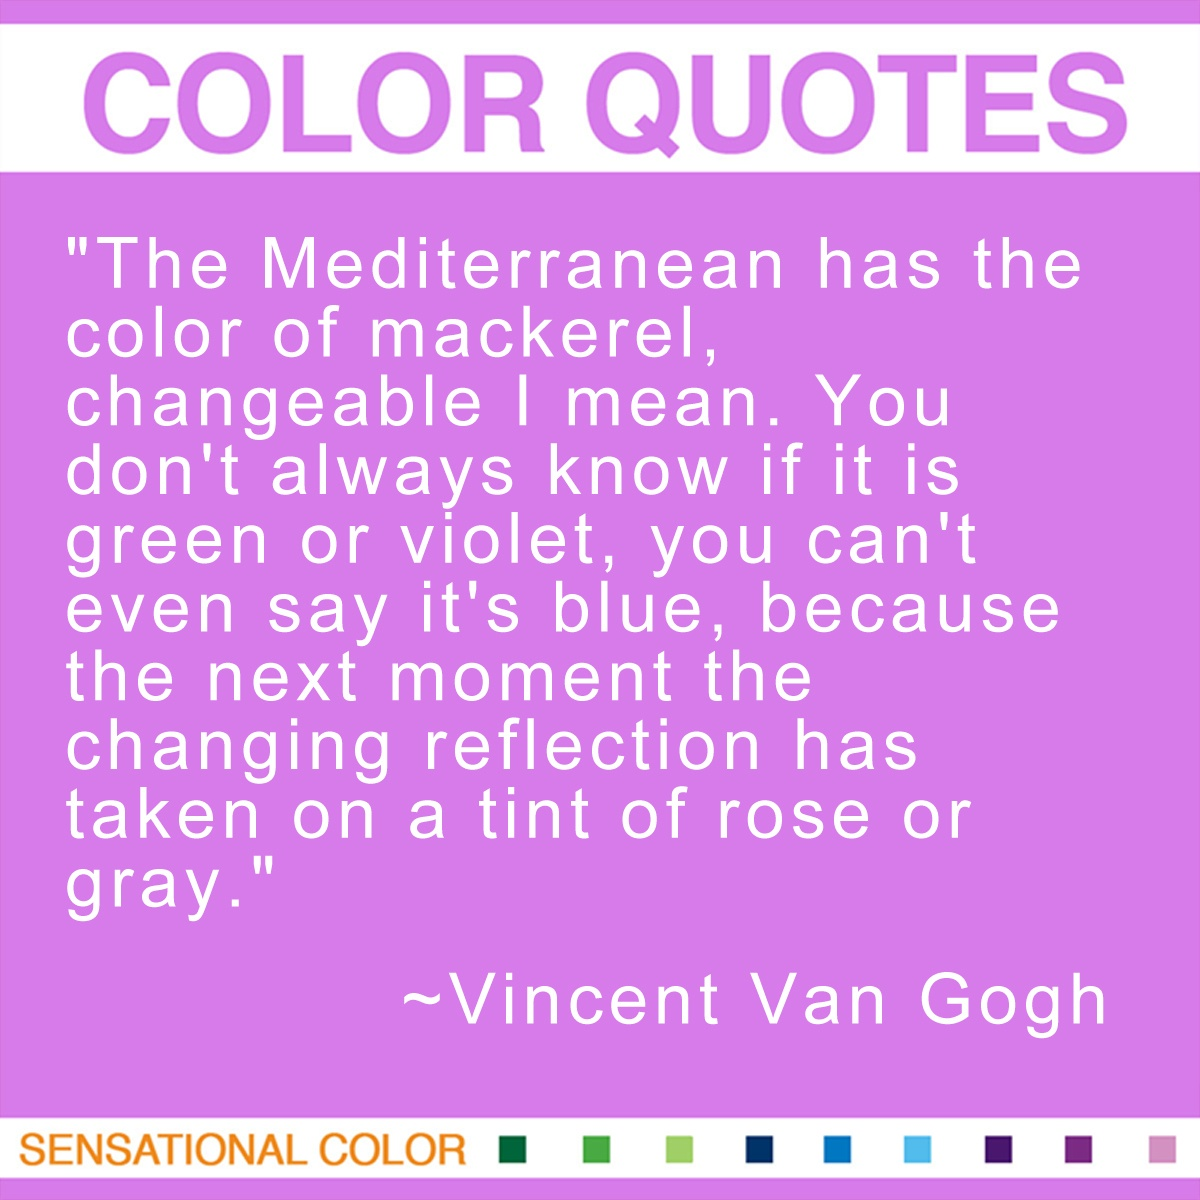 """The Mediterranean has the color of mackerel, changeable I mean. You don't always know if it is green or violet, you can't even say it's blue, because the next moment the changing reflection has taken on a tint of rose or gray."" - Vincent Van Gogh"